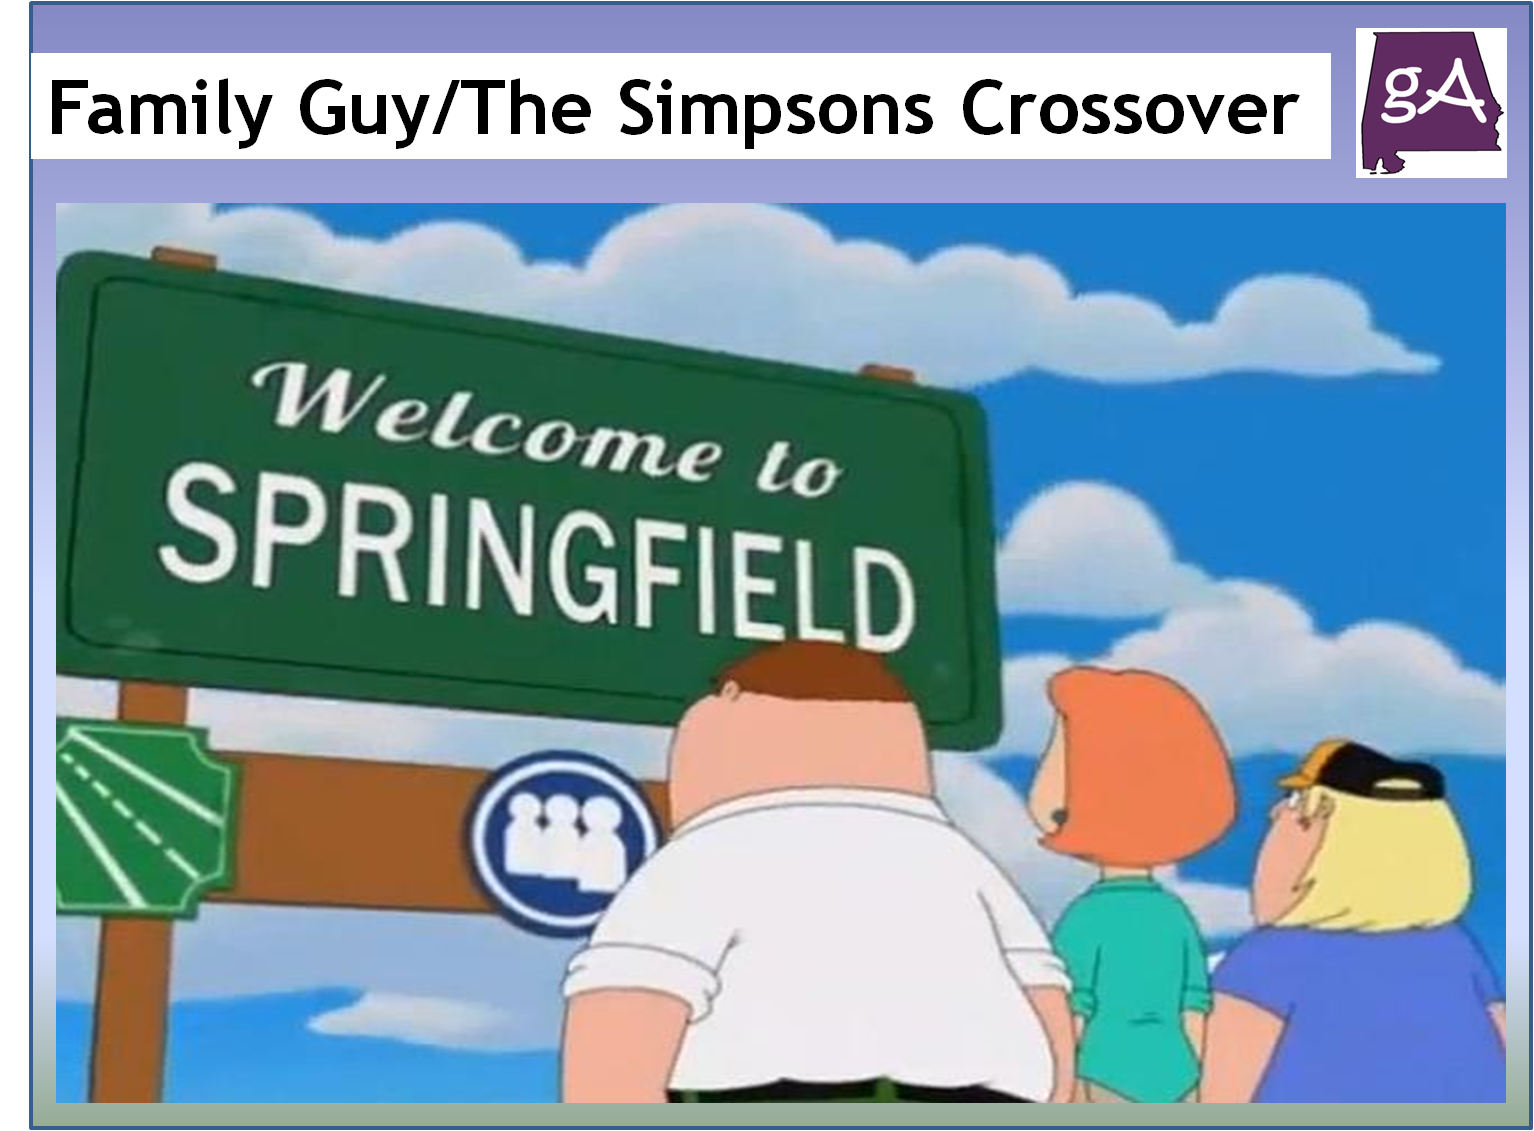 My Thoughts On The Simpsons / Family Guy Crossover